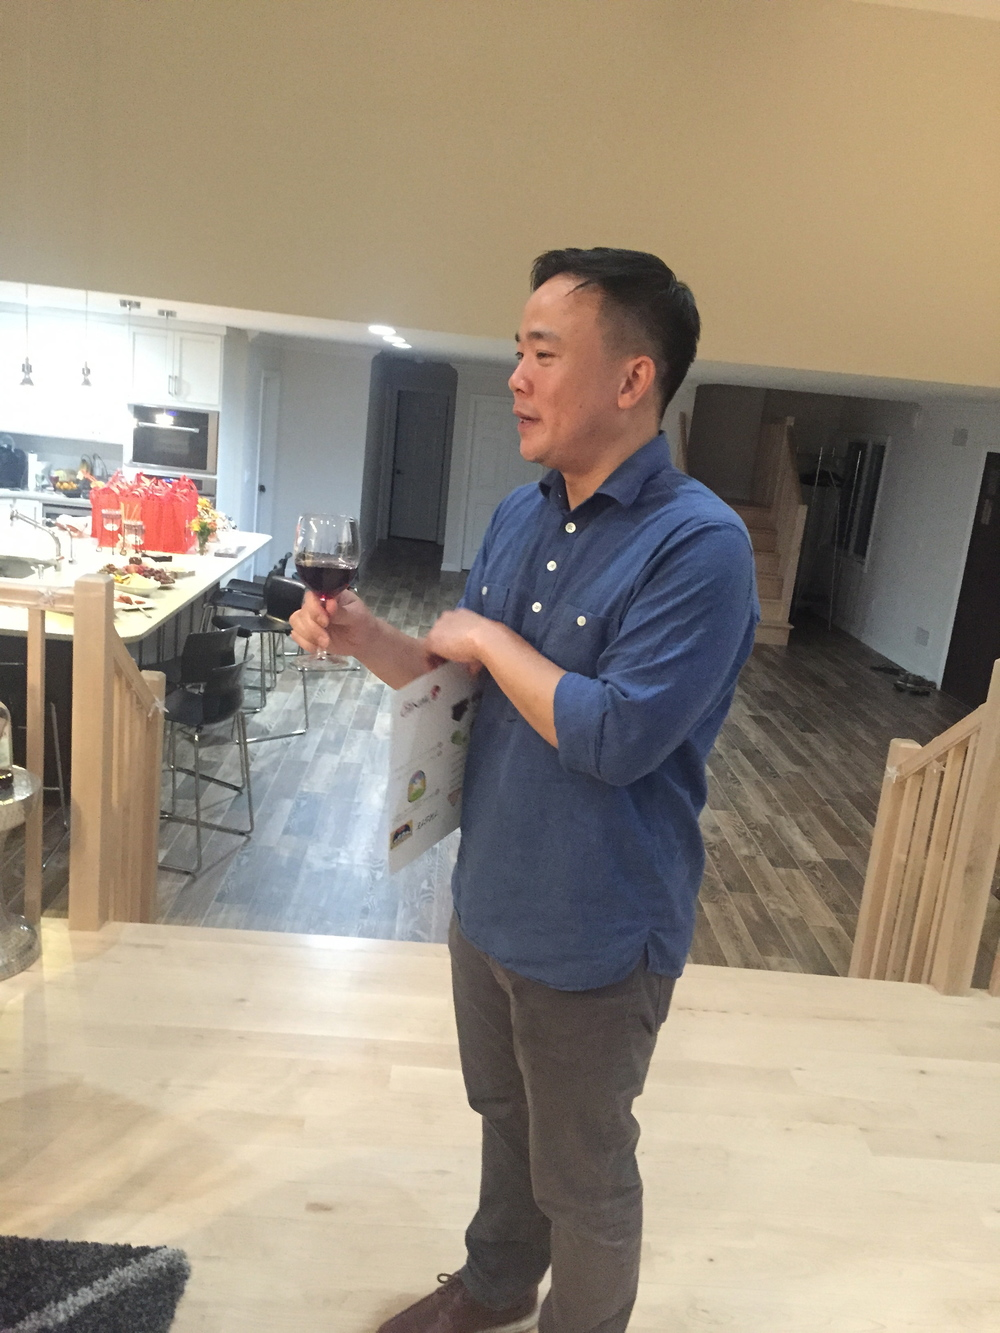 WineO Club Founder & Certified Sommelier Mark Fang